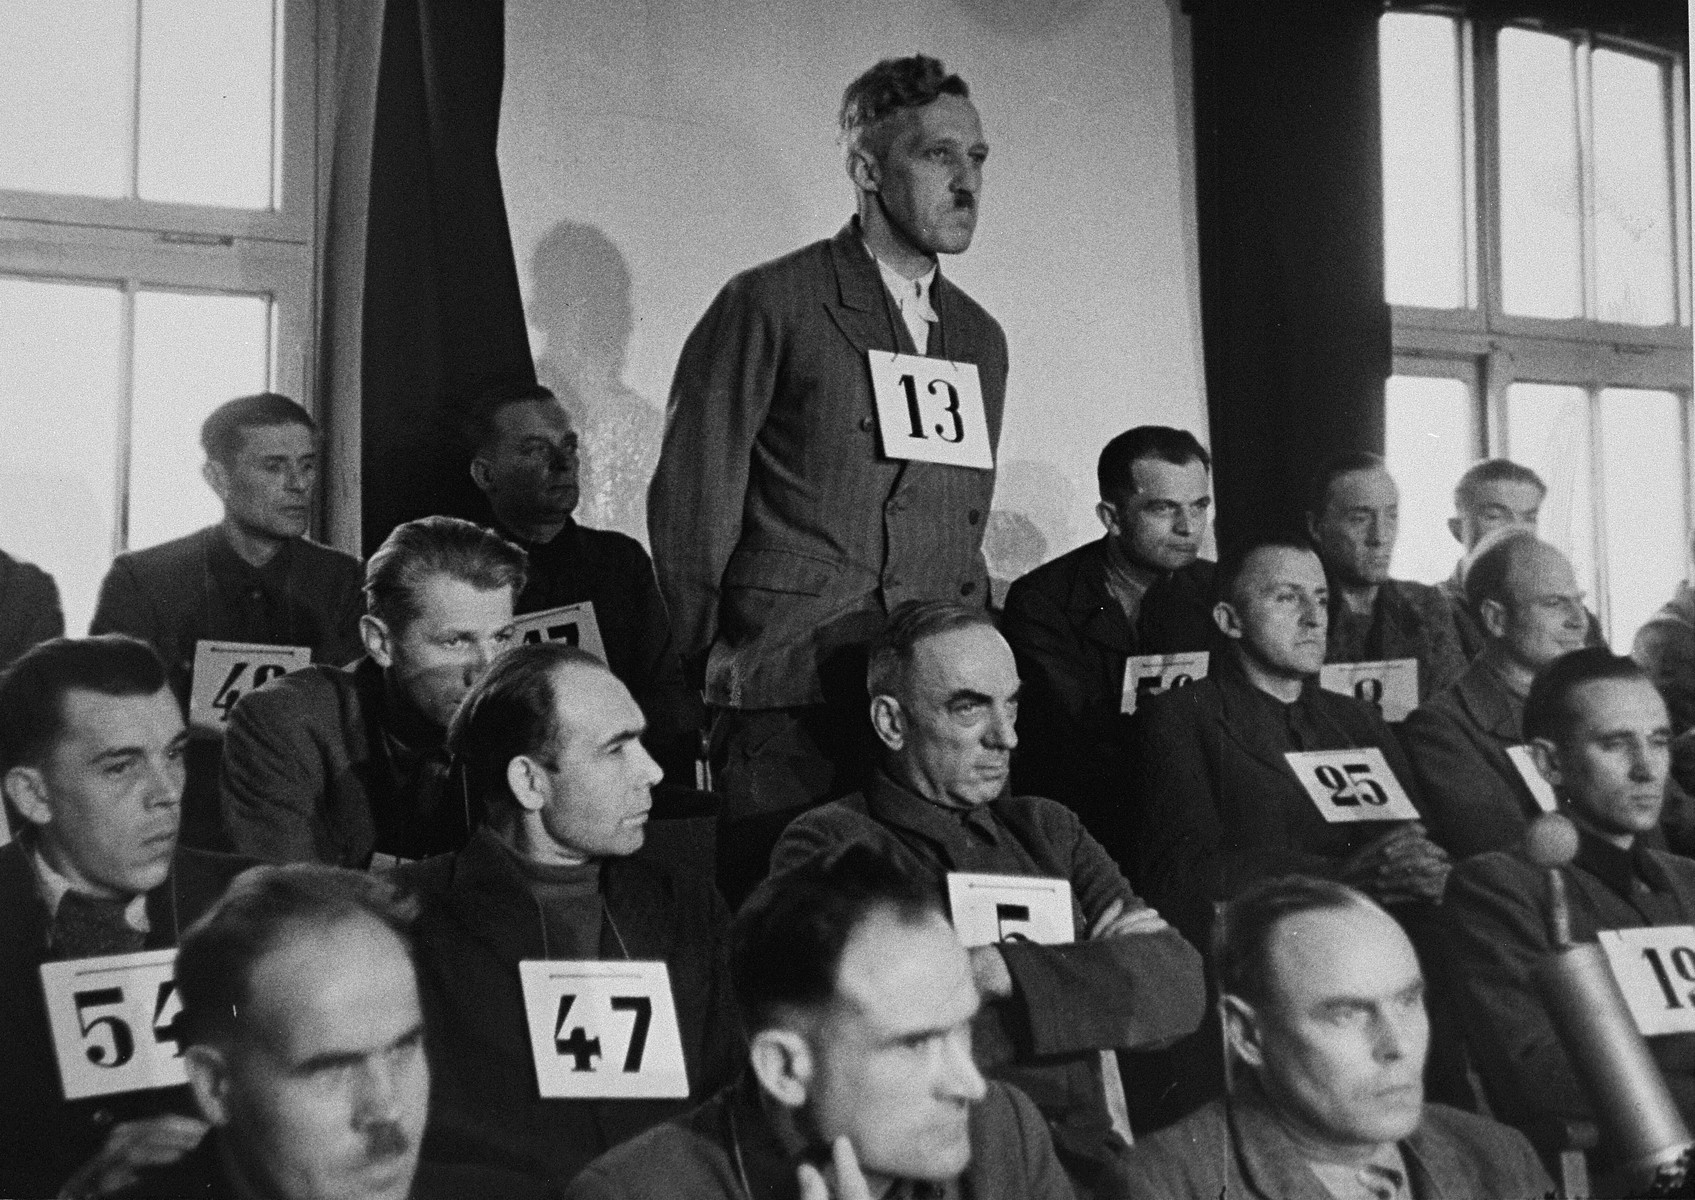 August Eigruber, former Gauleiter of Upper Austria, and a defendant at the trial of 61 former camp personnel and prisoners from Mauthausen, stands in his place in the defendants' dock.   Eigruber was convicted and sentenced to death on May 13, 1946.